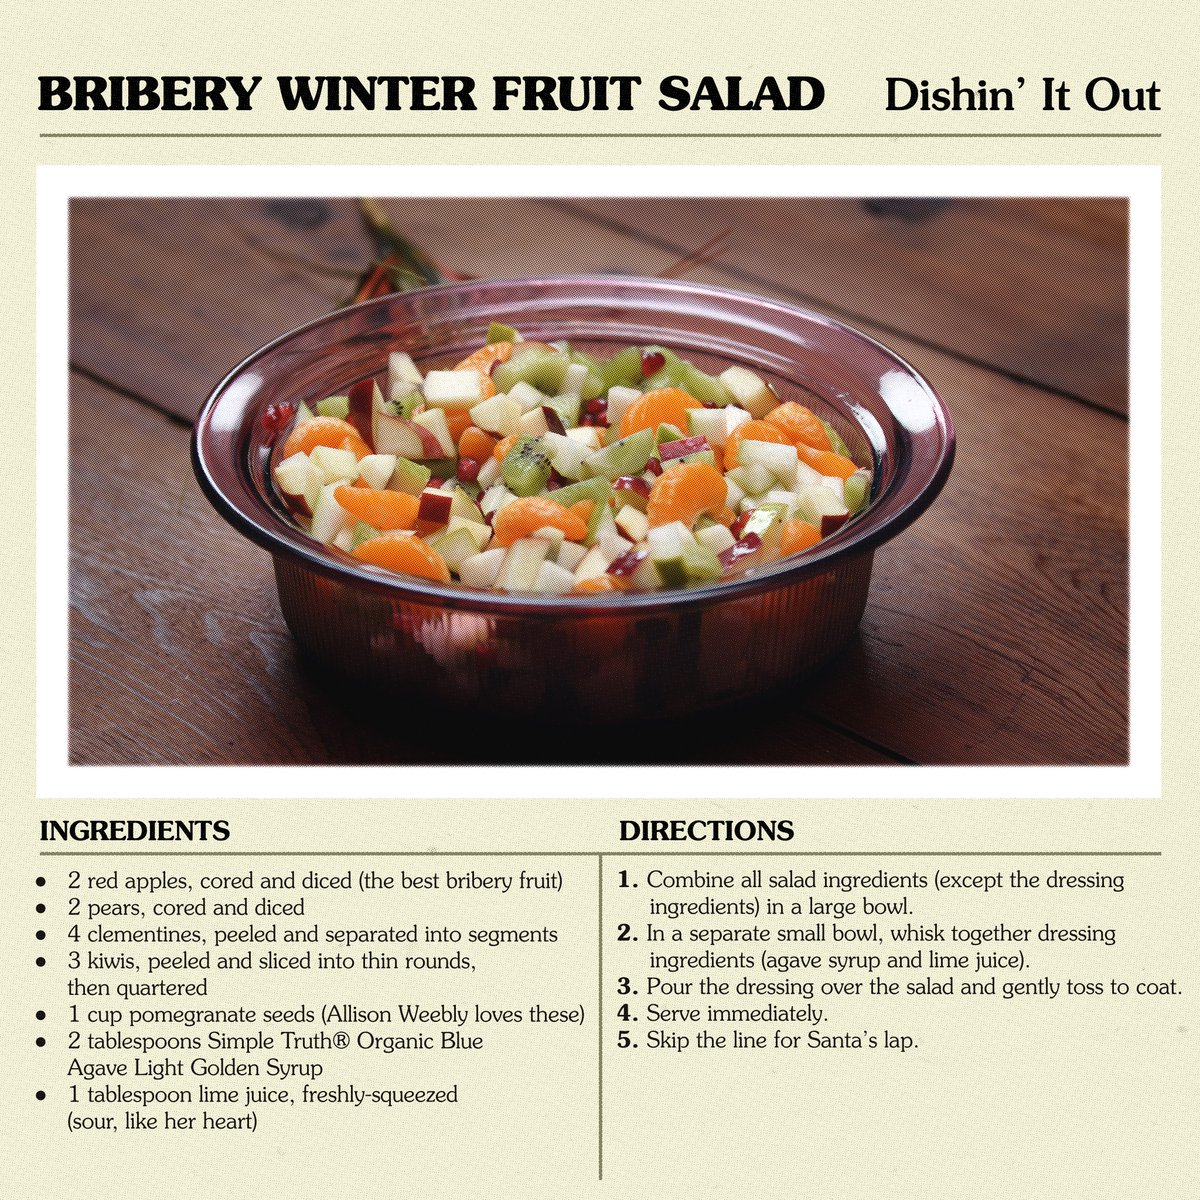 Want to get invited to a holiday party when everyone hates you? Bribe them with this fruit salad. @kroger #ad